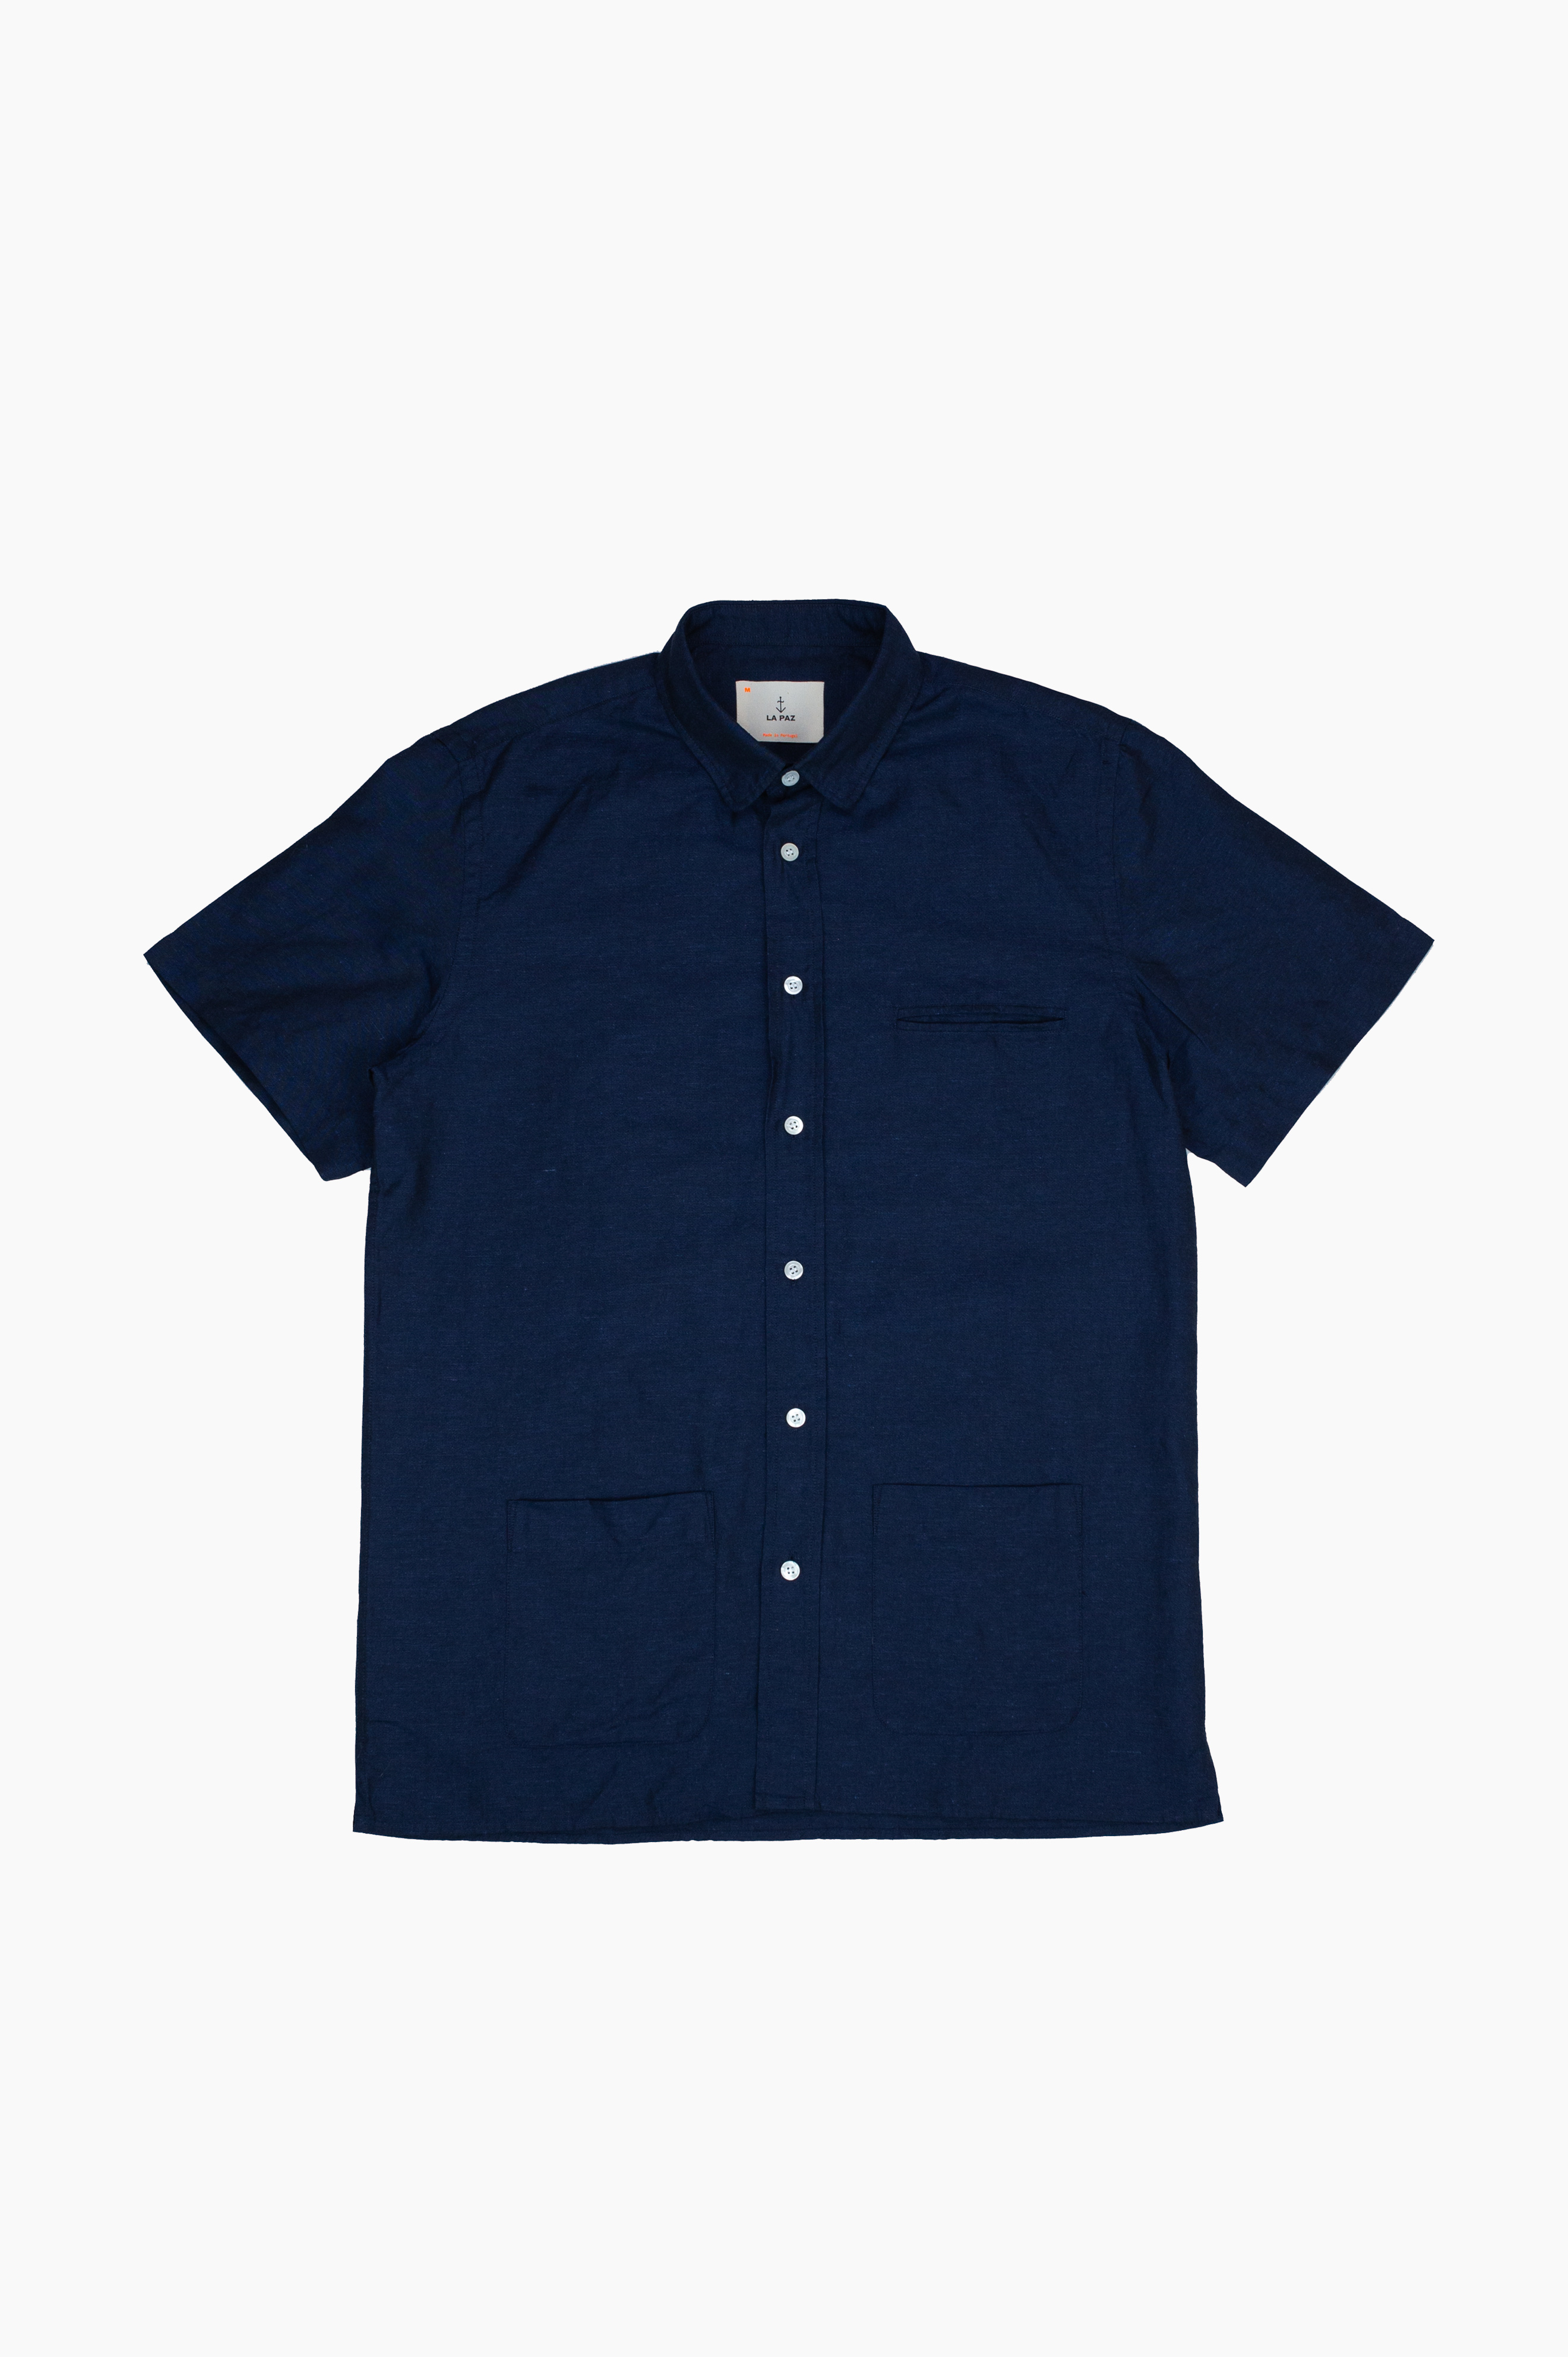 Castro Short Sleeve Shirt Navy